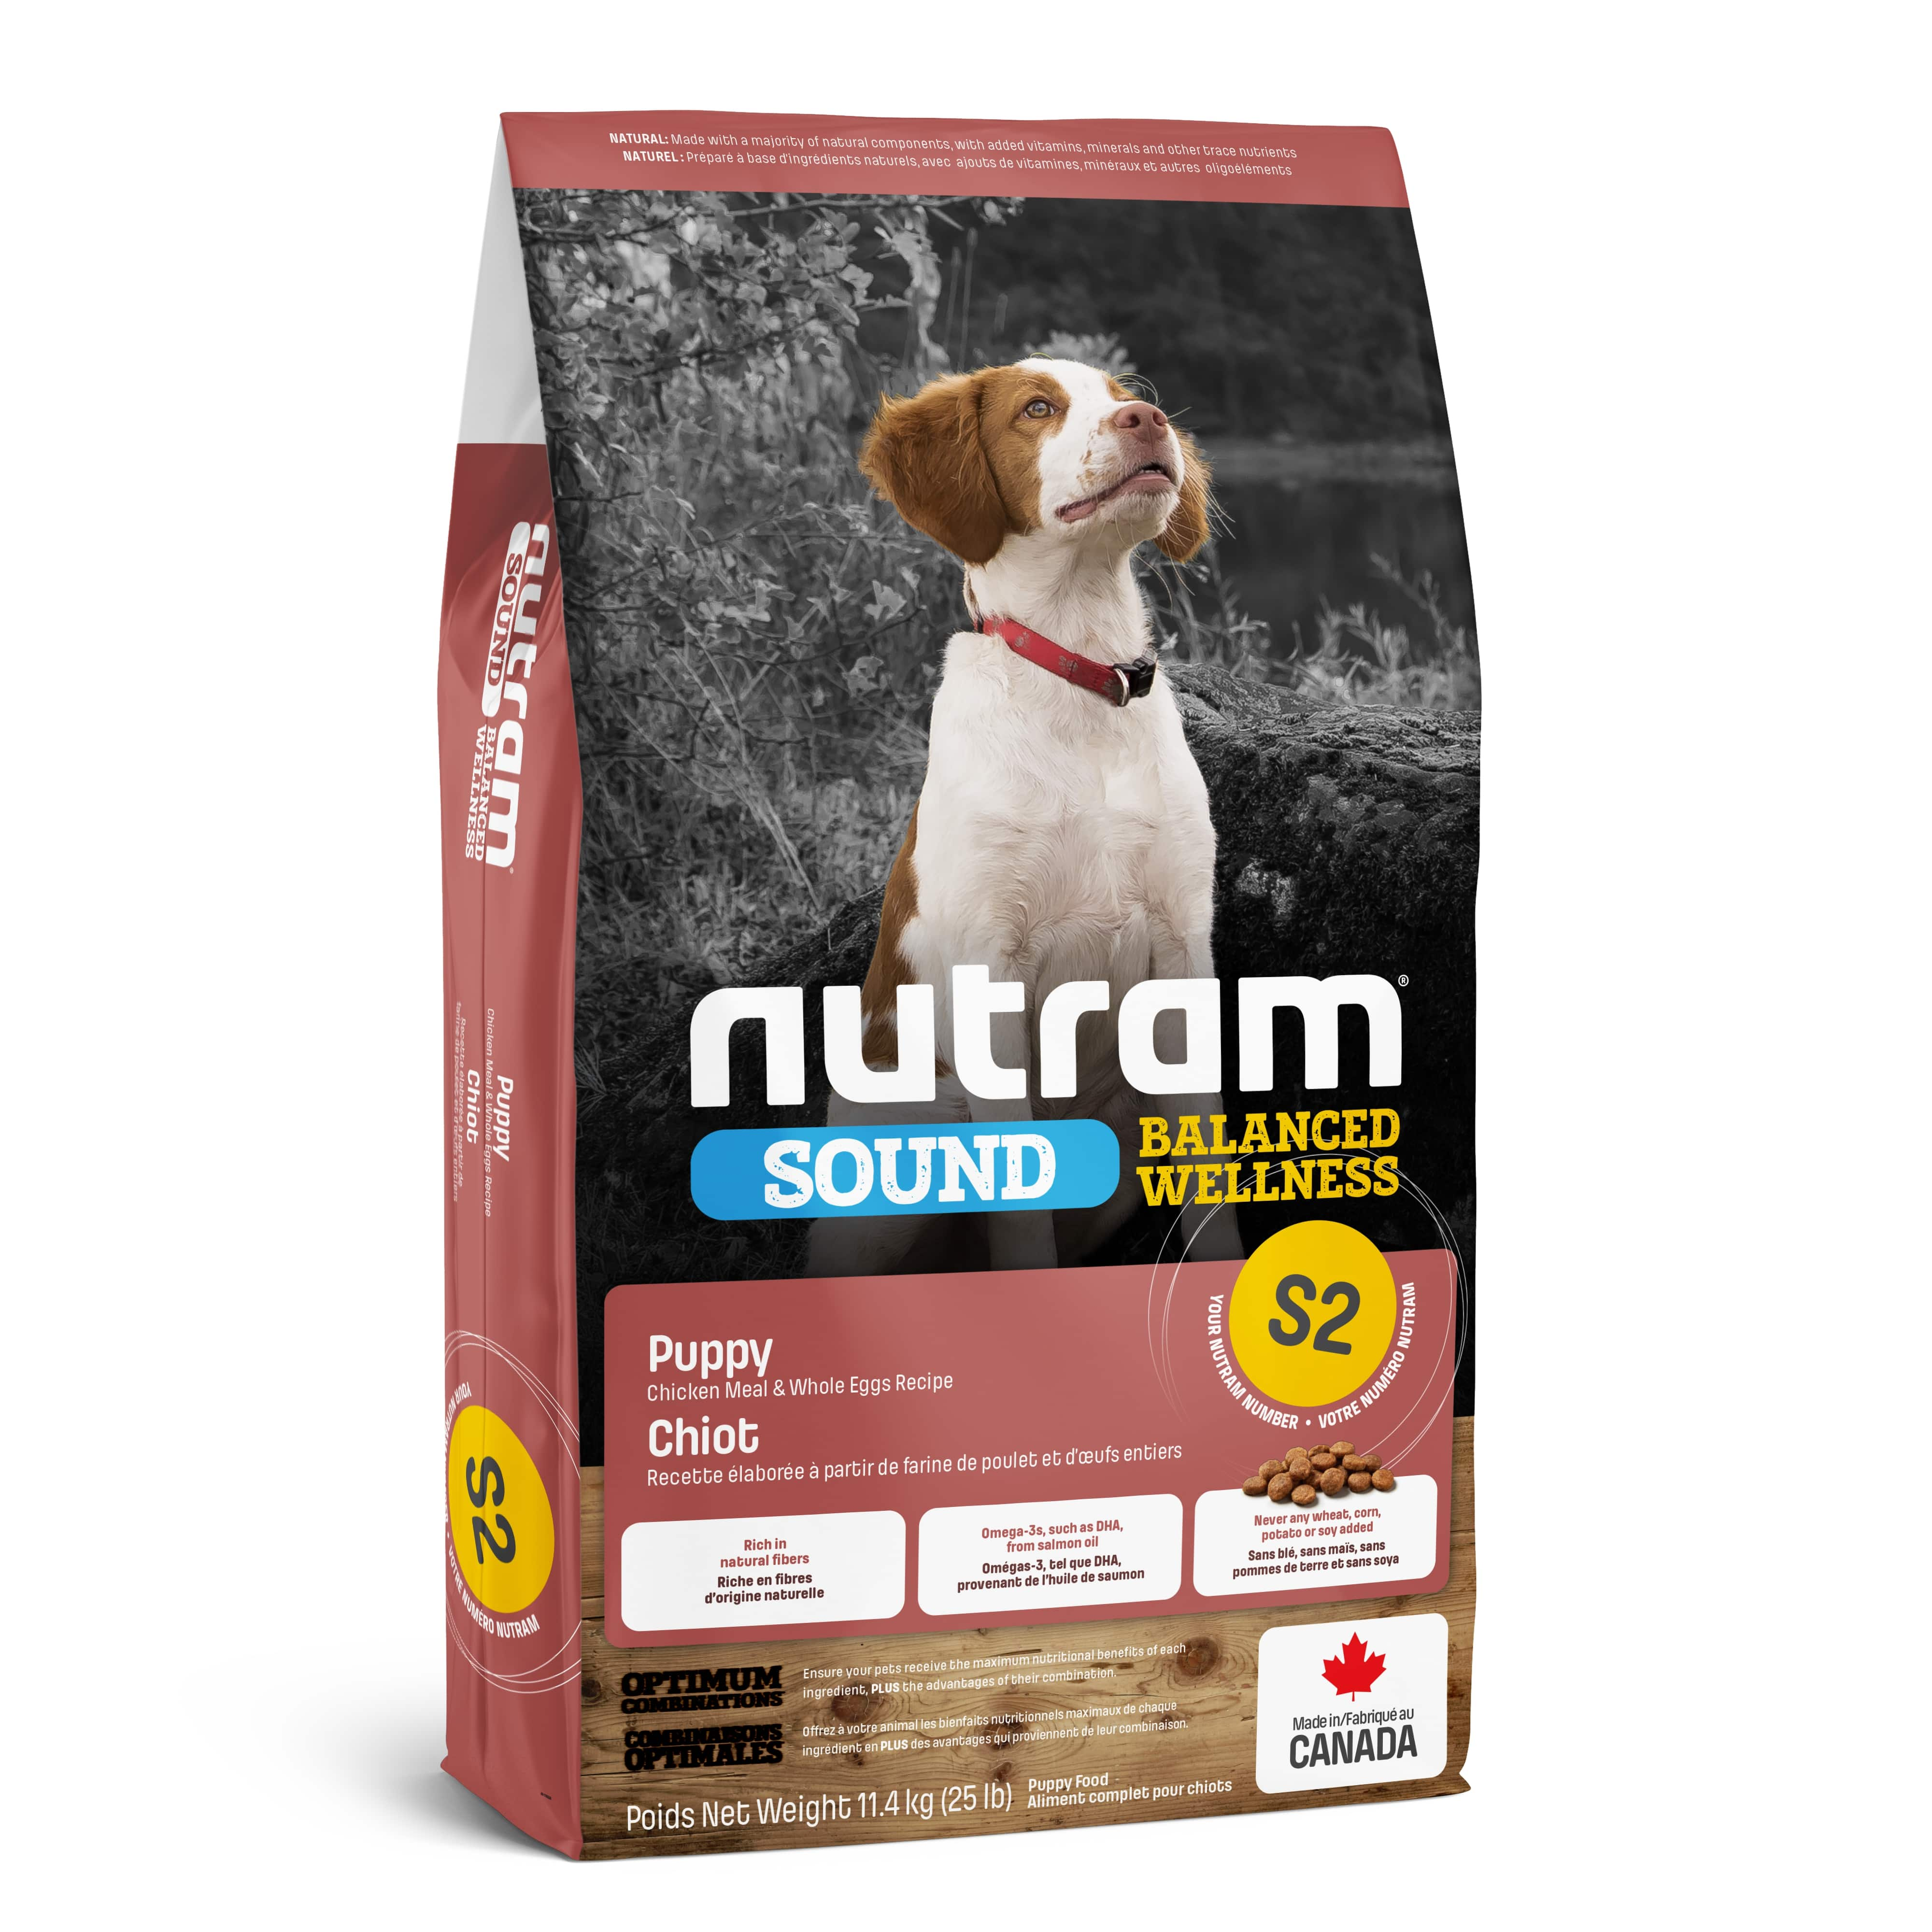 S2 Nutram Sound Balanced Wellness® Natural Puppy Food